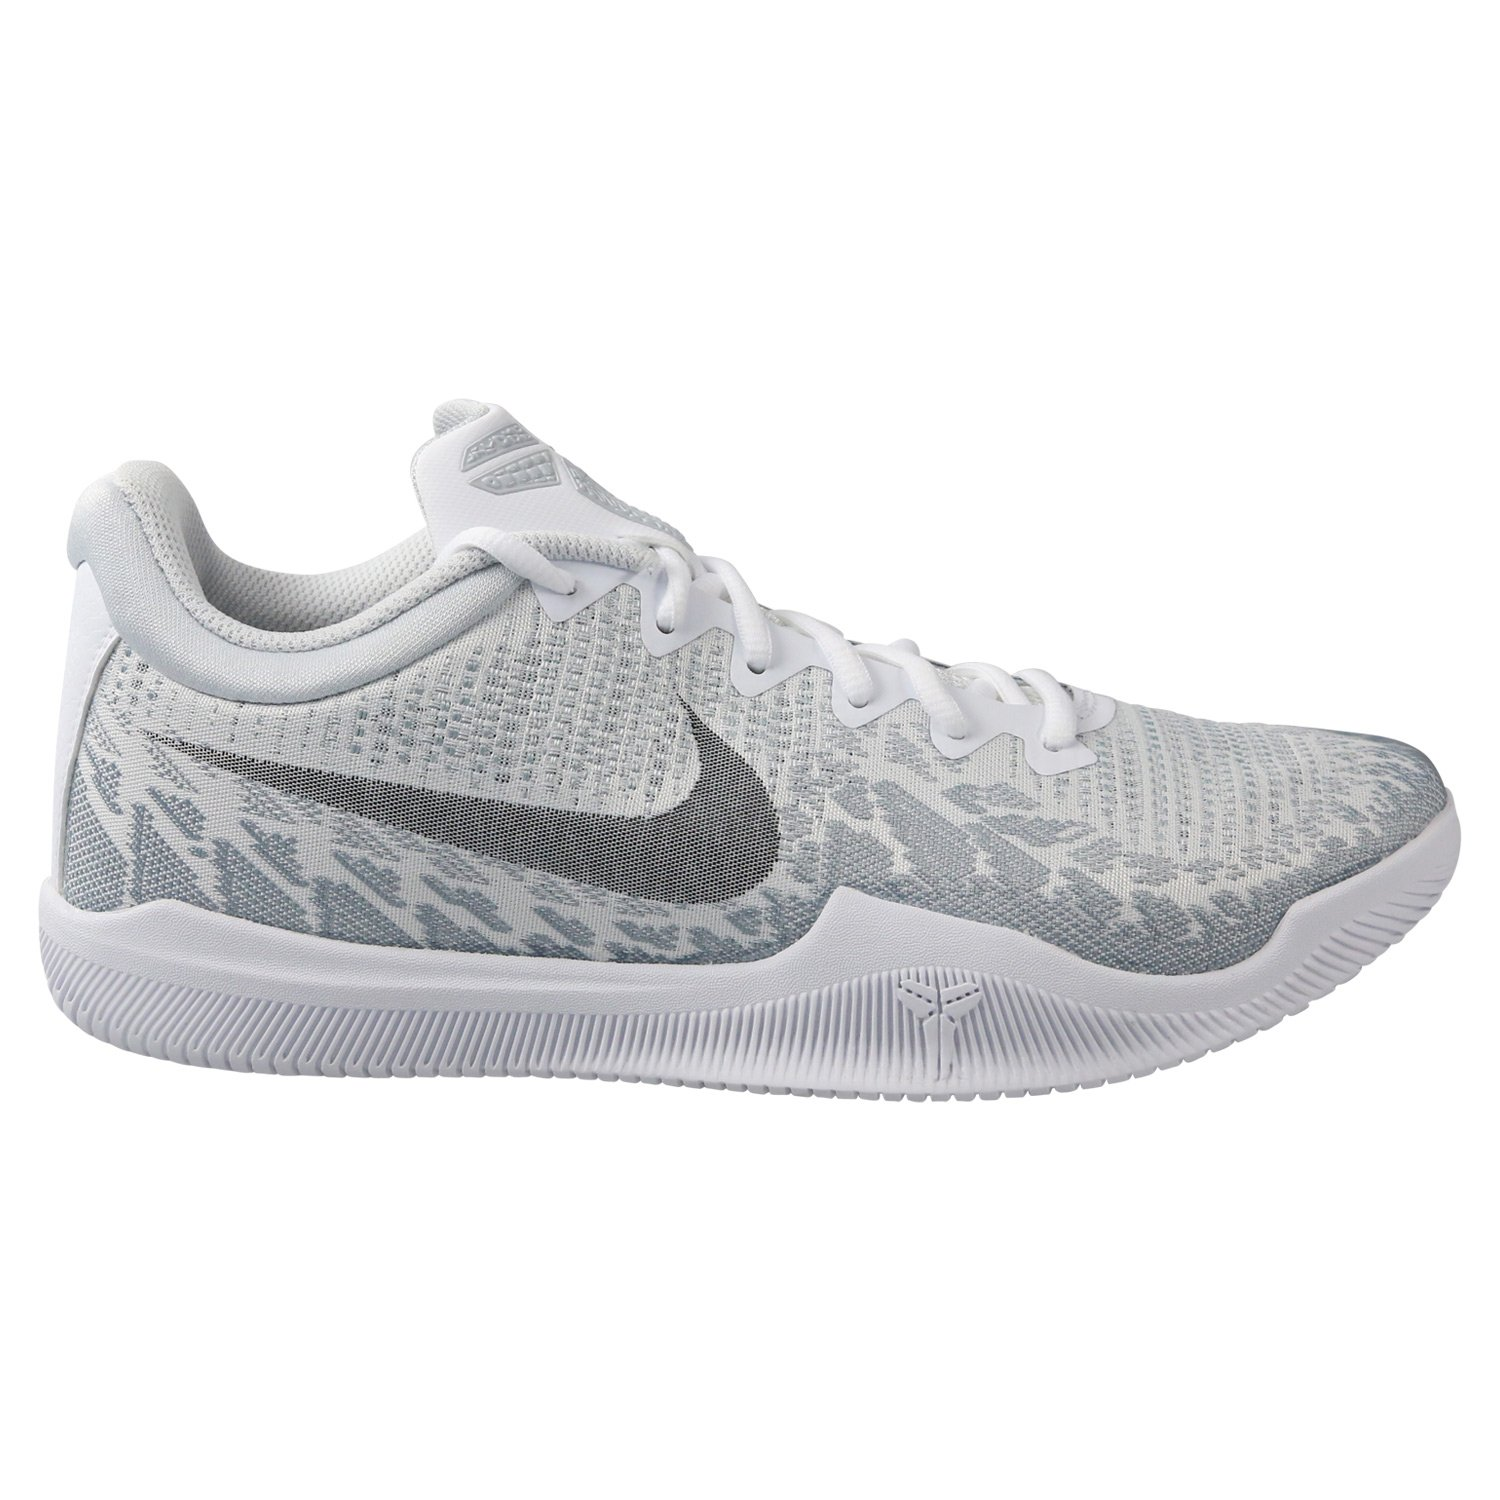 info for 37945 69c12 Galleon - Nike Mamba Rage Mens Basketball Shoes (14 D(M) US)